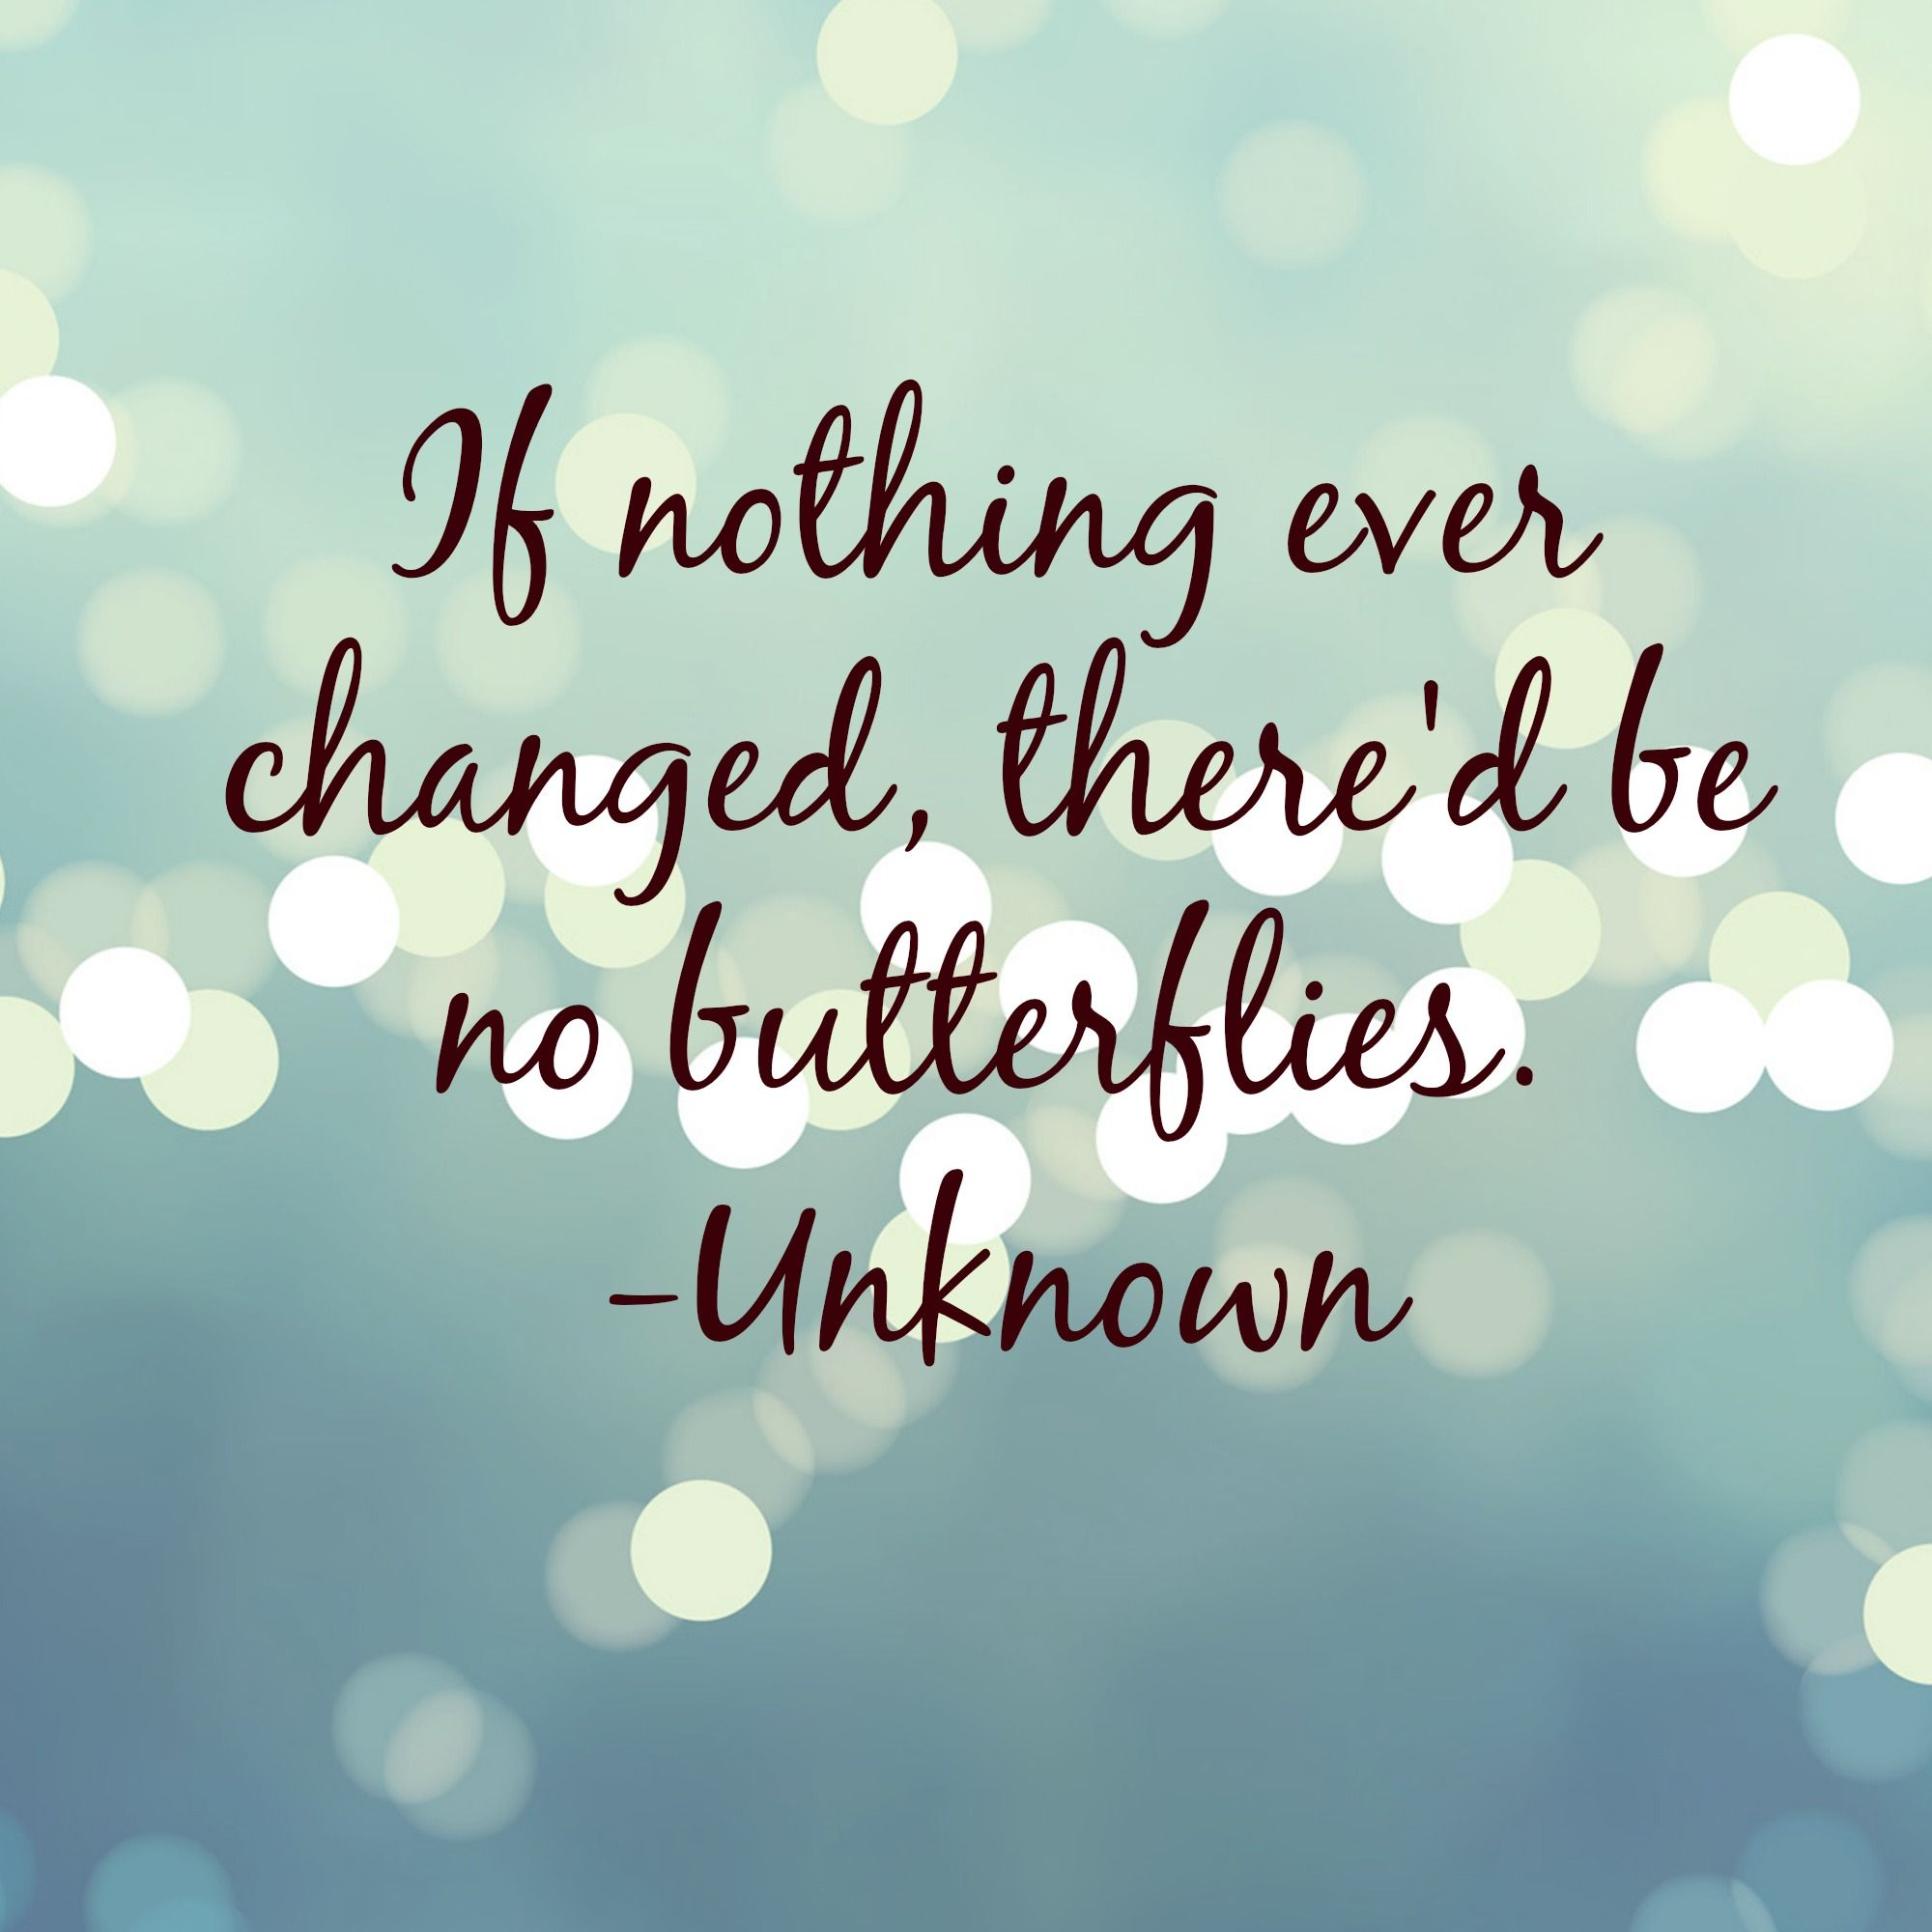 26 Inspiring Quotes About Change   Sayings   Pinterest   Change      If nothing ever changed  there d be no butterflies